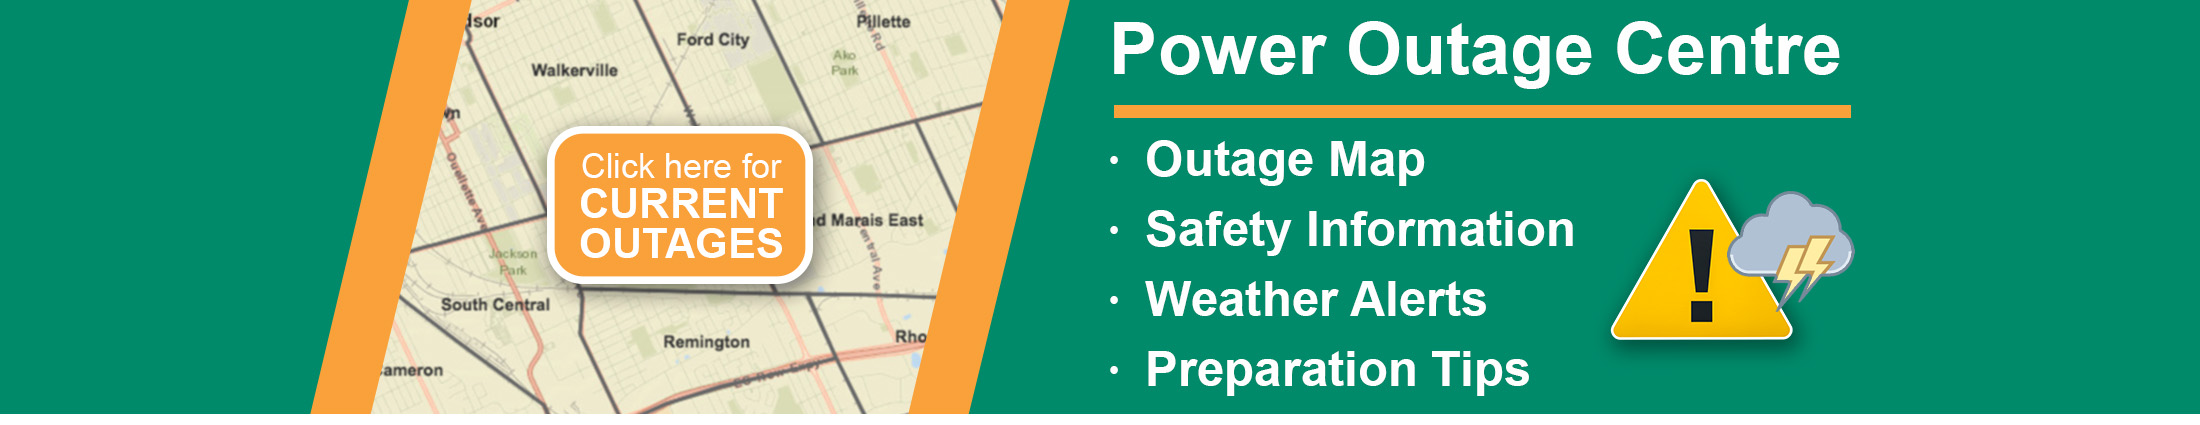 Power Outage Centre Banner